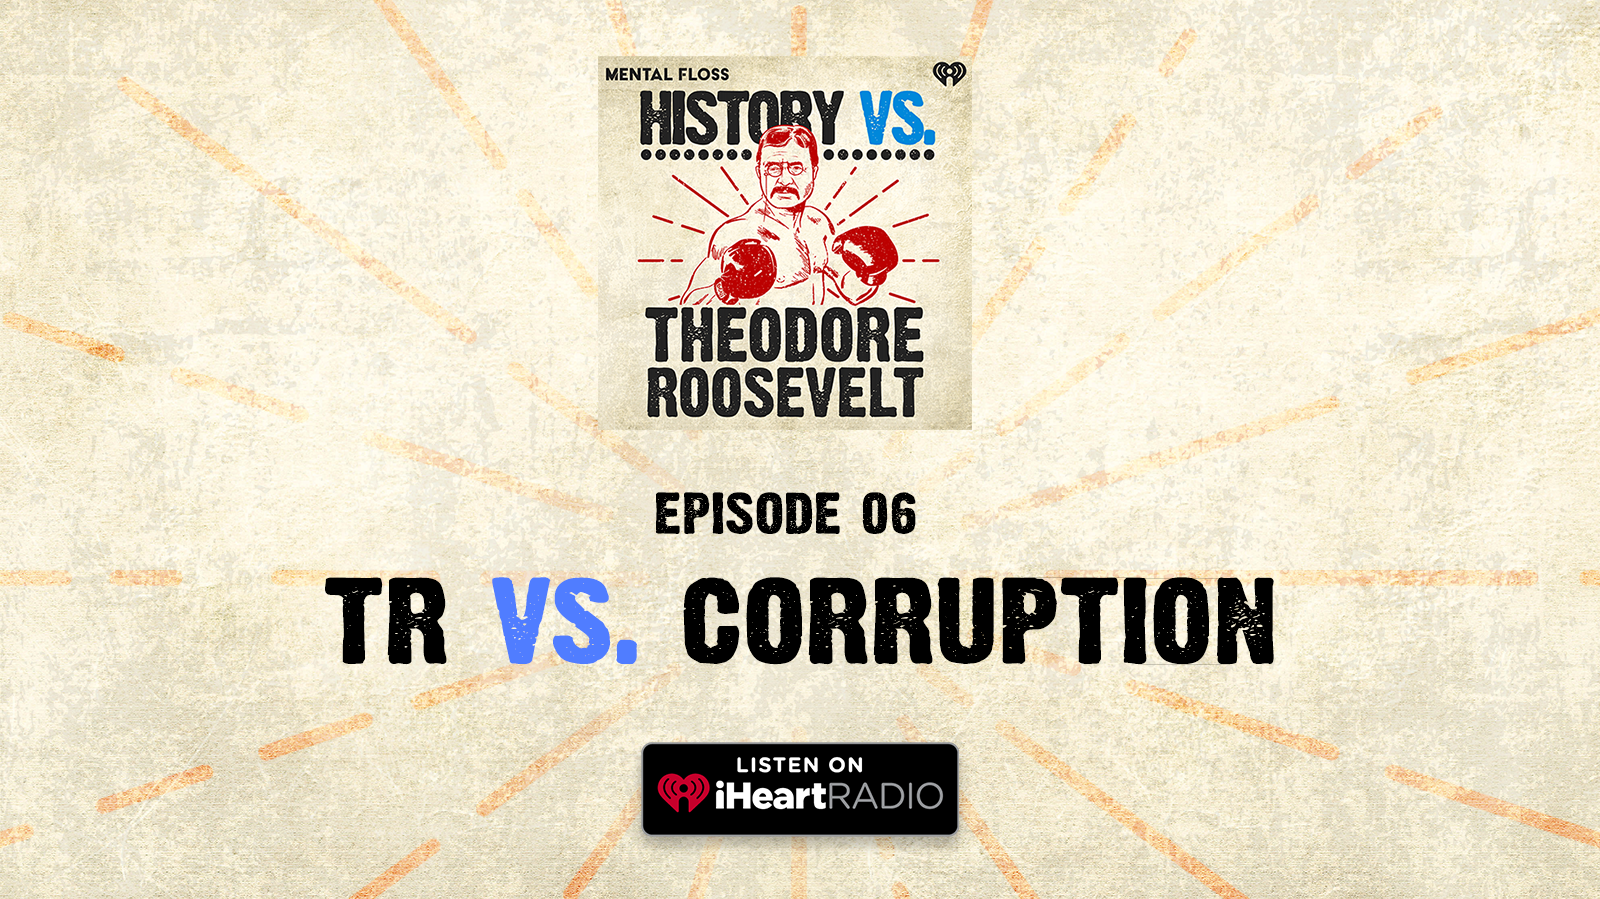 History Vs. Episode 6: Theodore Roosevelt vs. Corruption